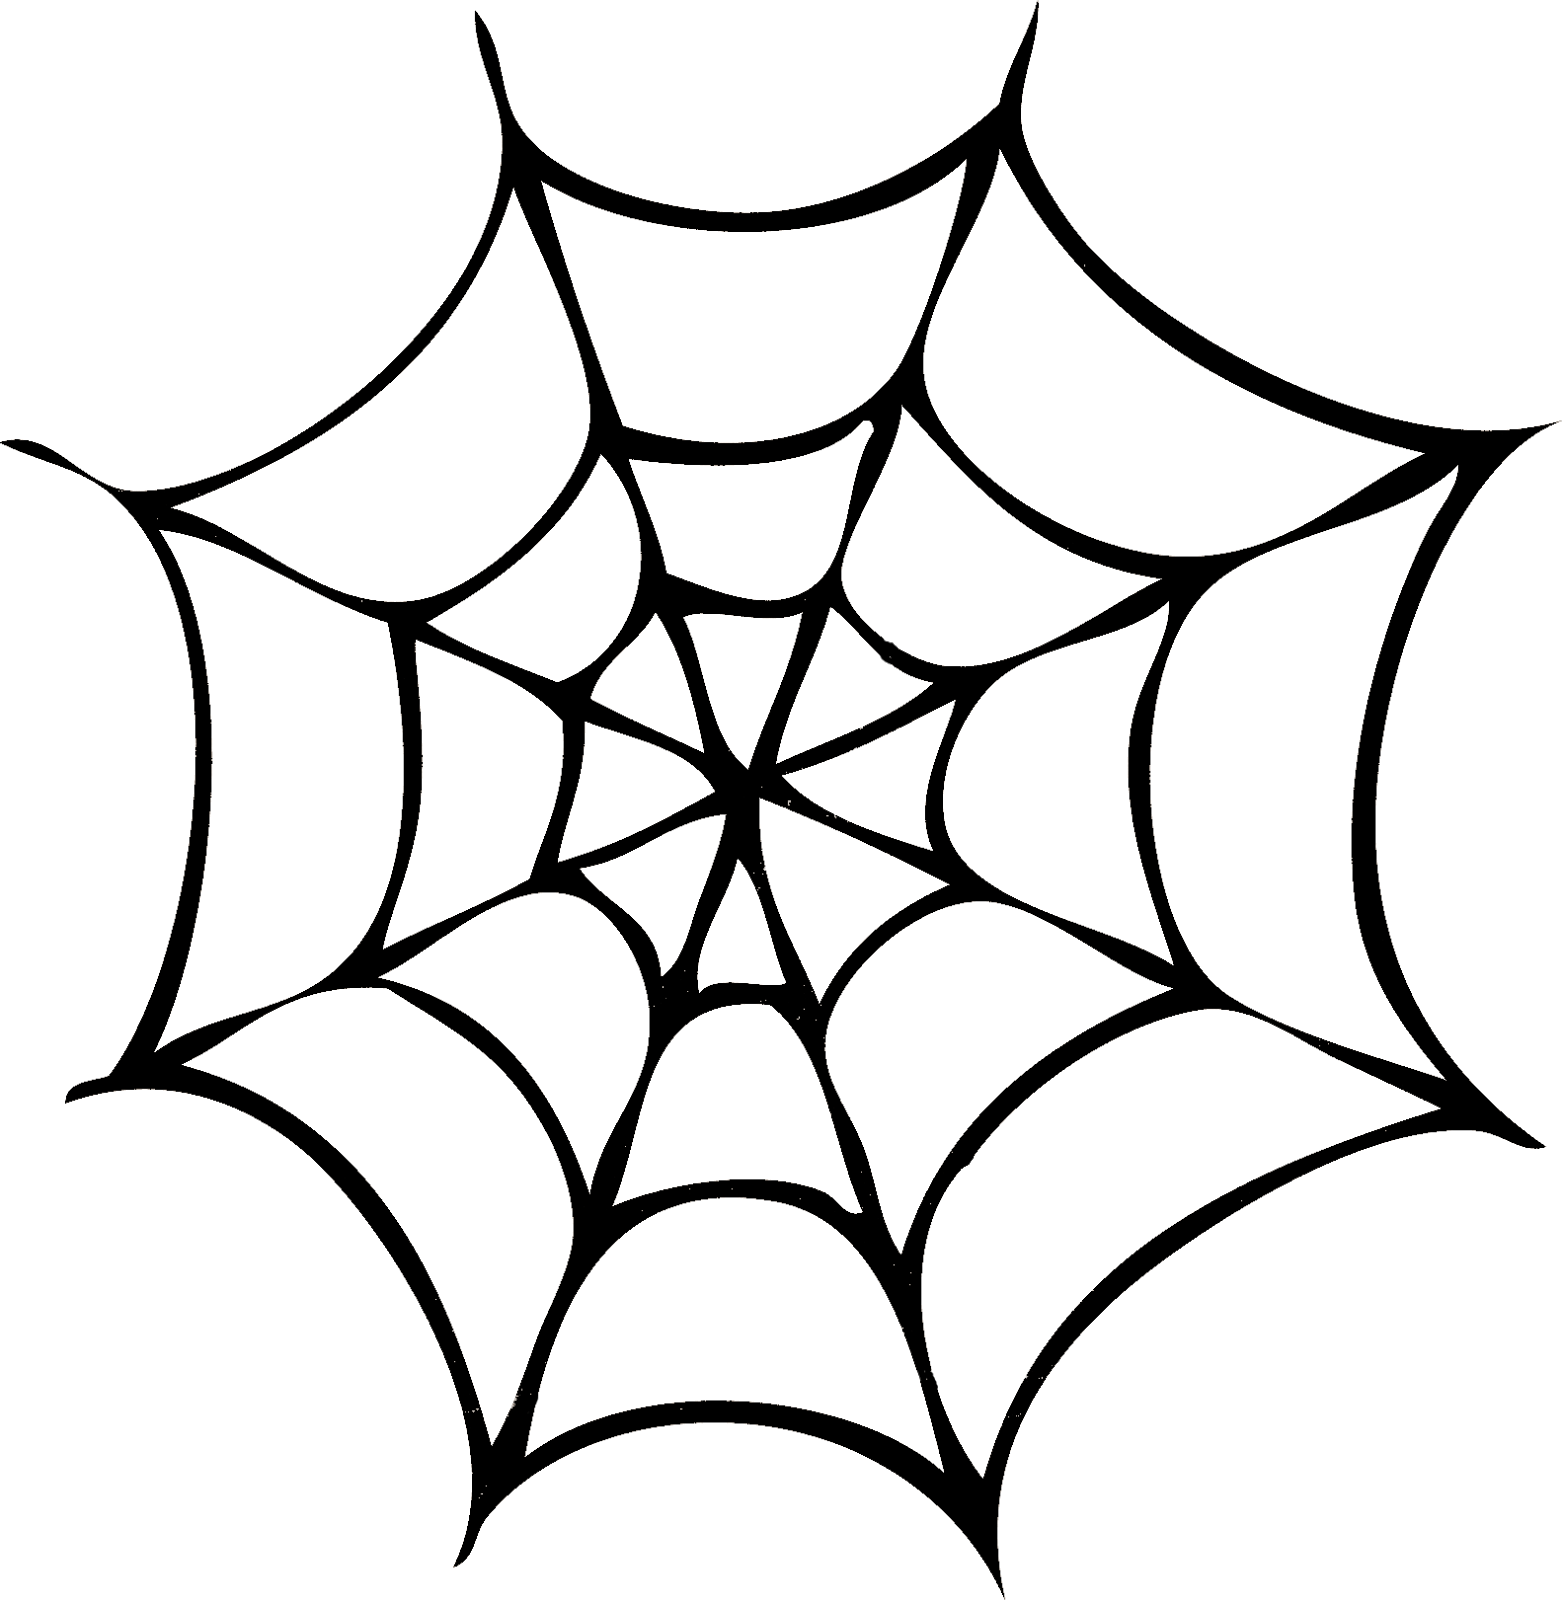 Silhouettes Di Halloween Free Halloween Images Line Art Images Halloween Spider Web Halloween Images